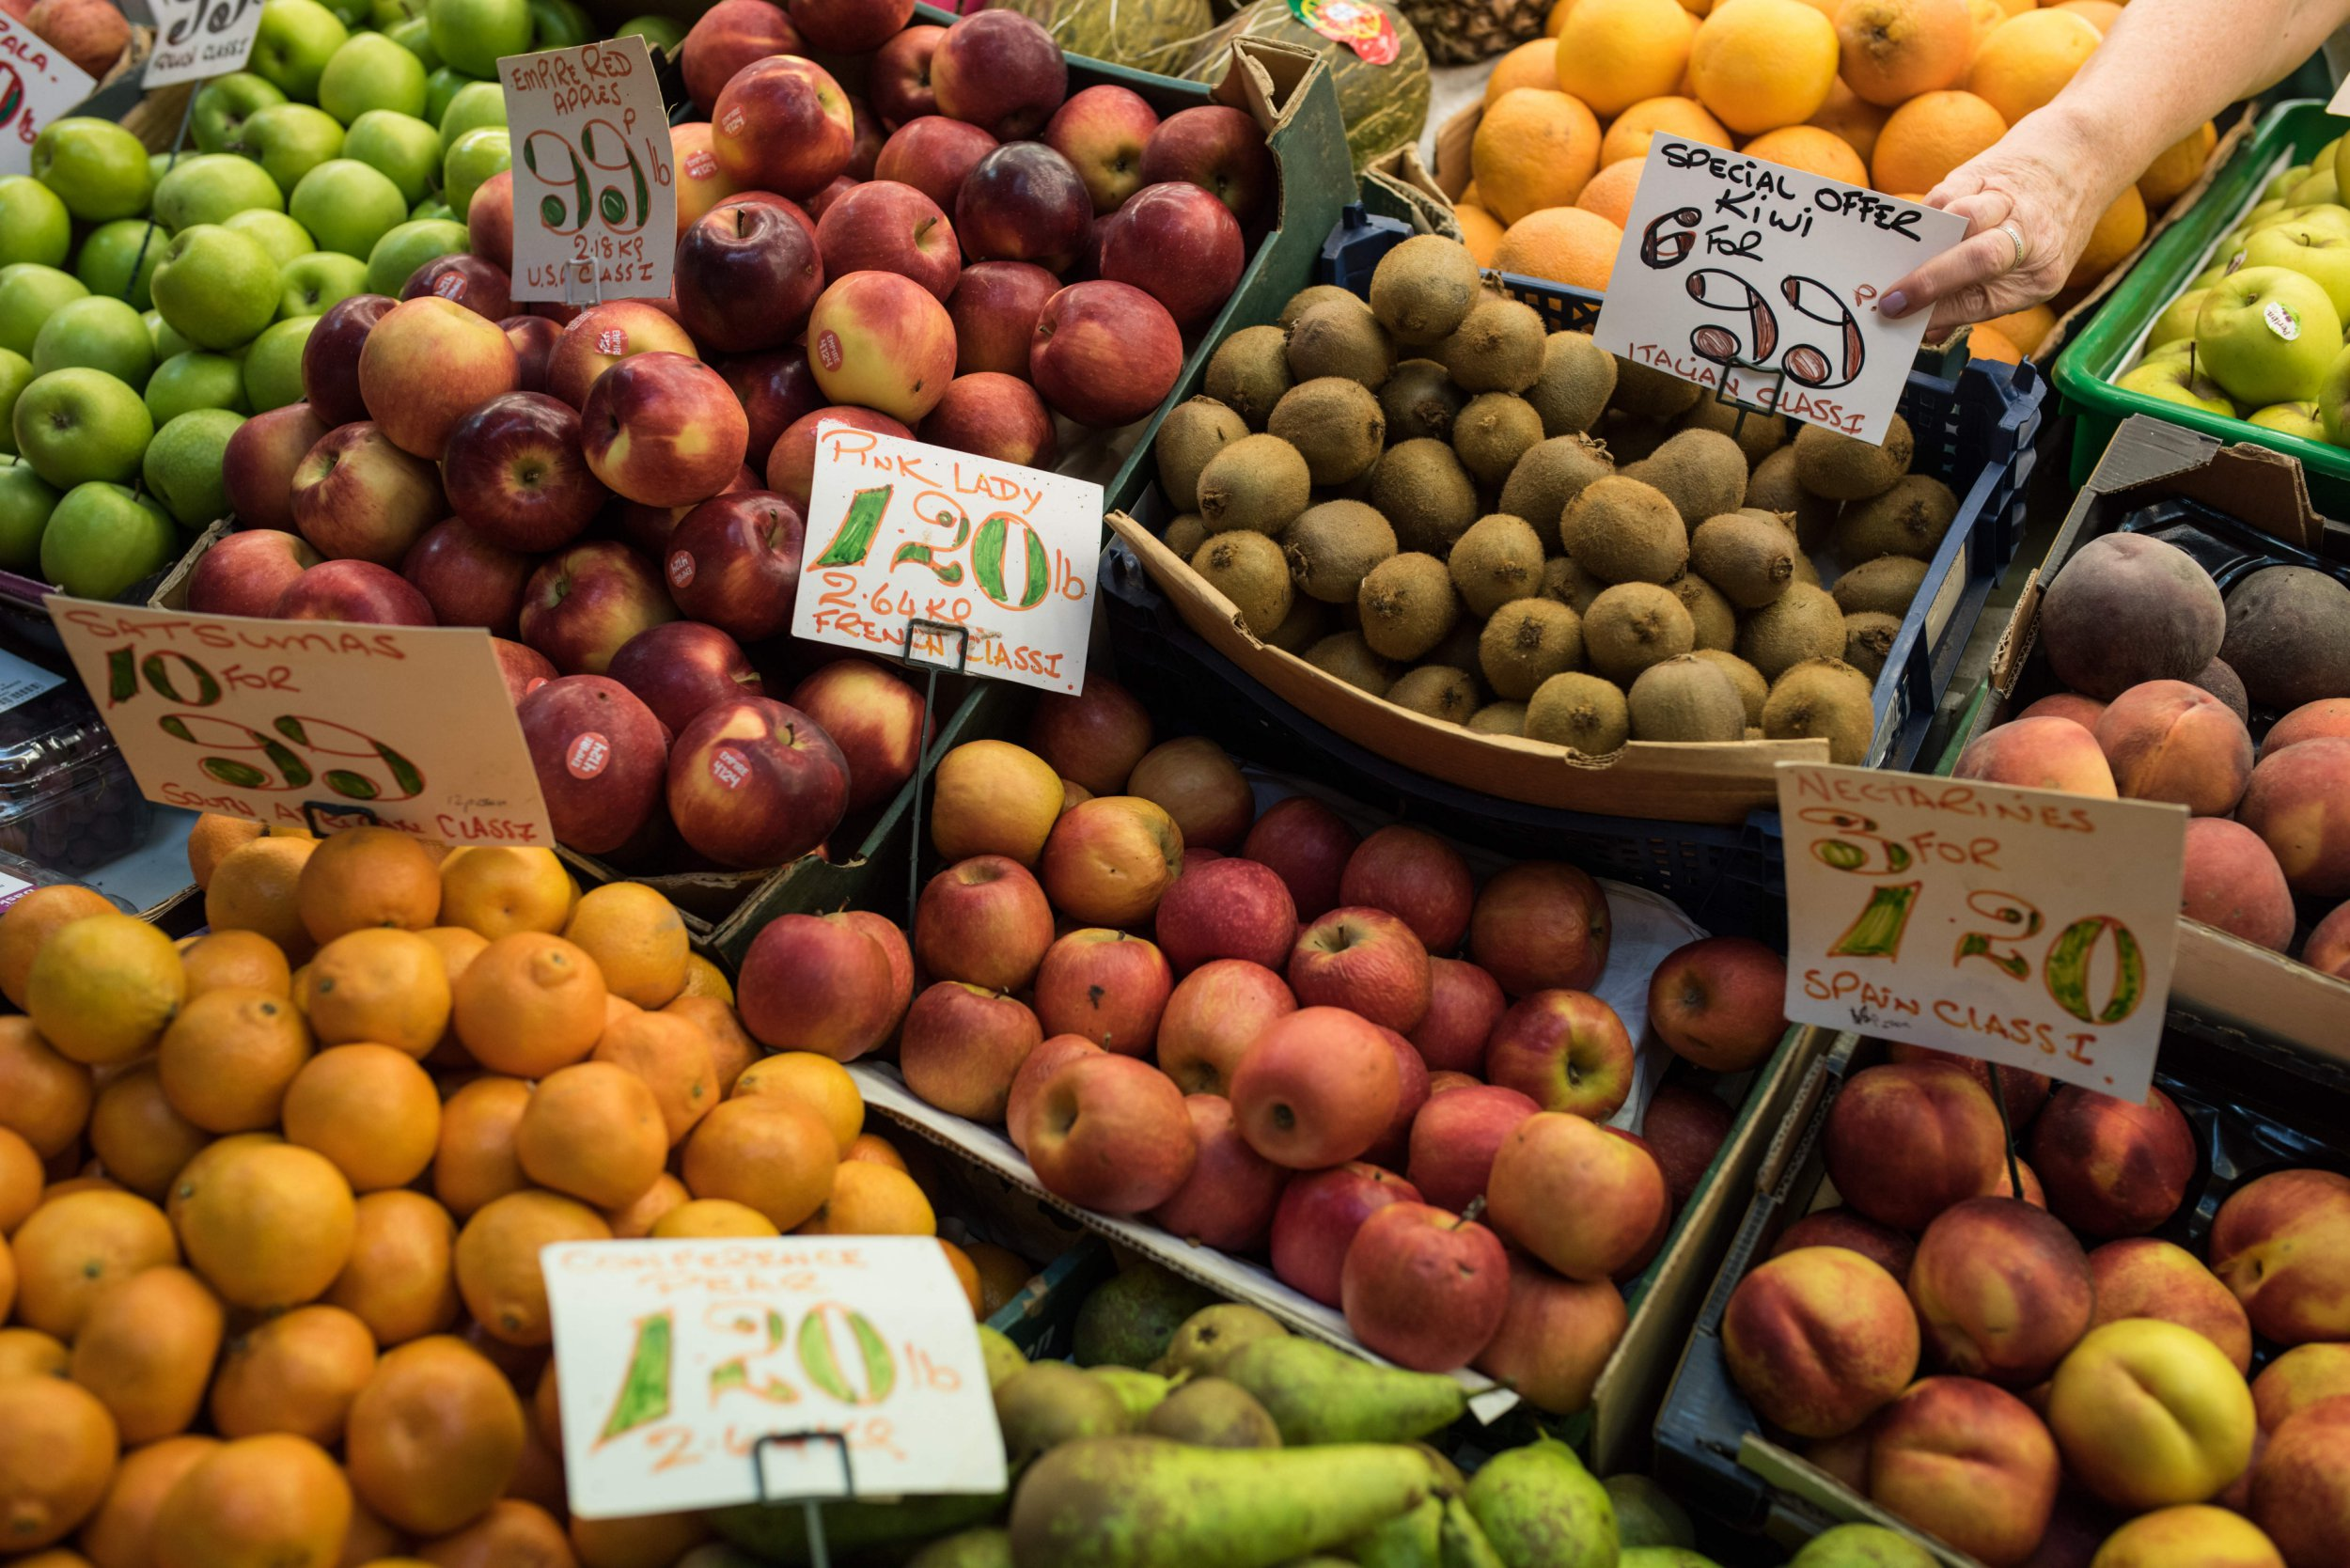 Fruit and vegetables are displayed for sale in Darlington Market in the town centre of Darlington, northern England on September 6, 2018. (Photo by Oli SCARFF / AFP) (Photo credit should read OLI SCARFF/AFP/Getty Images)